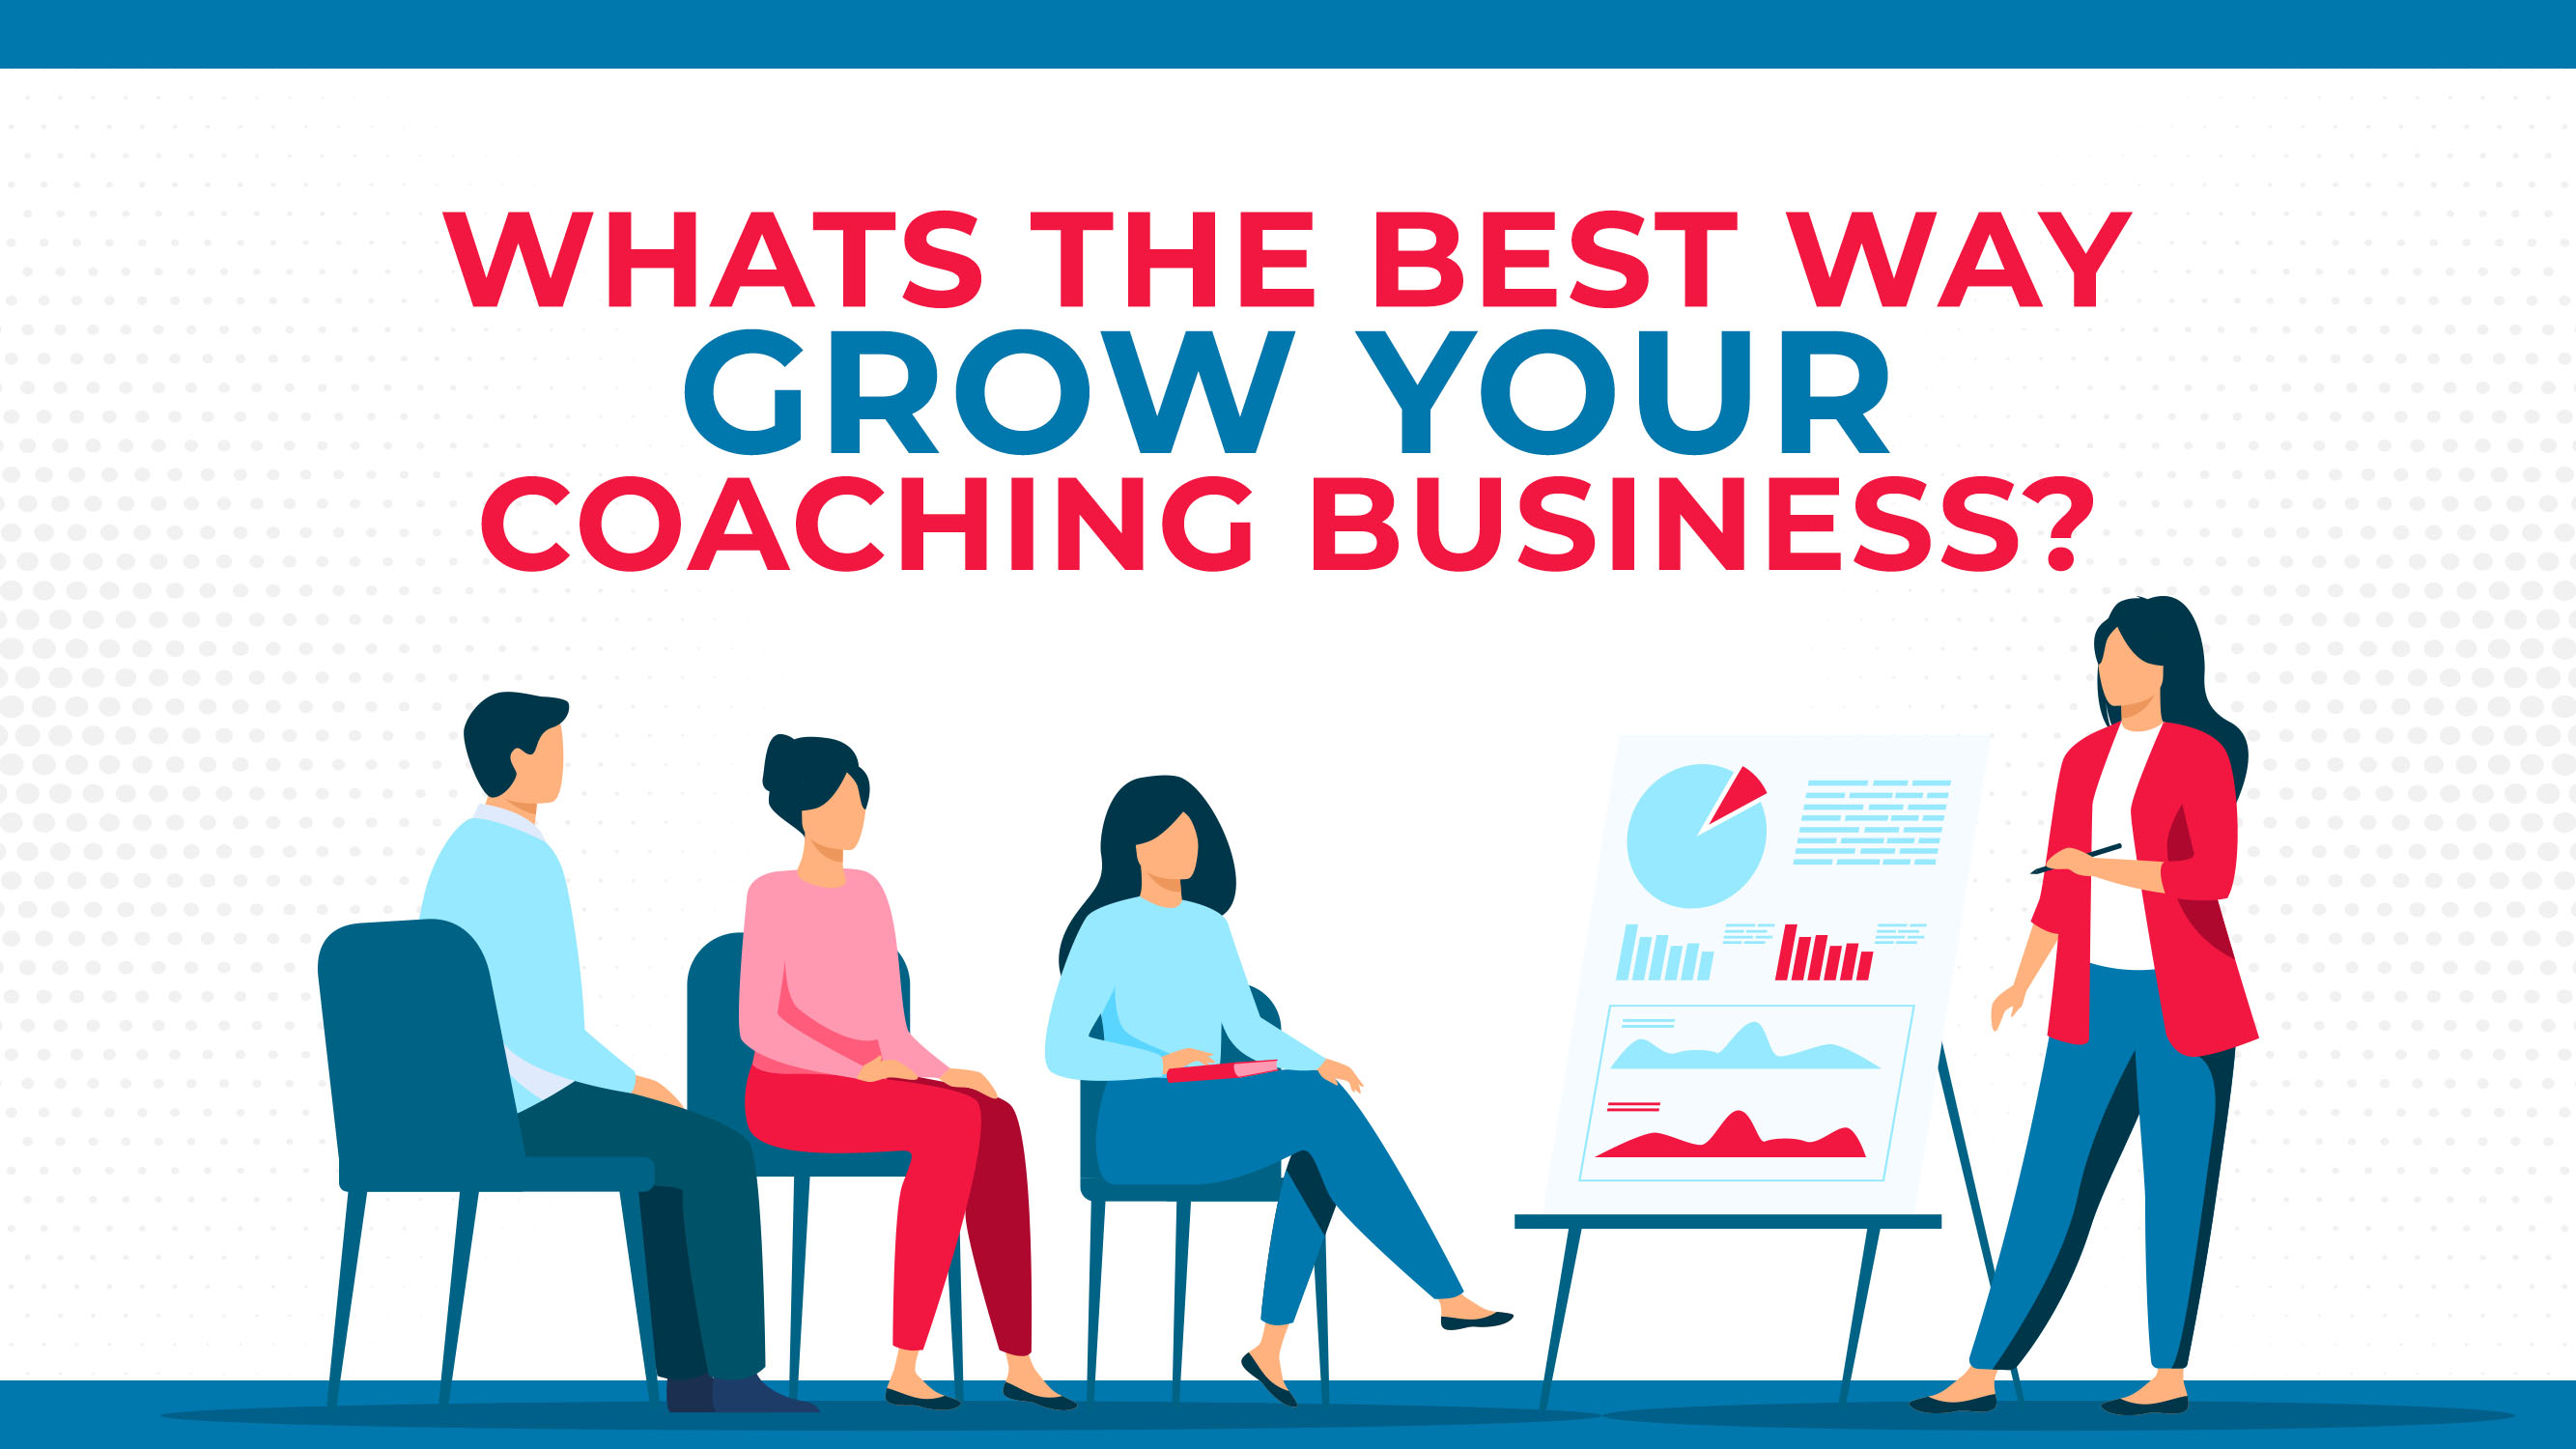 What's The Best Way To Grow Your Coaching Business?